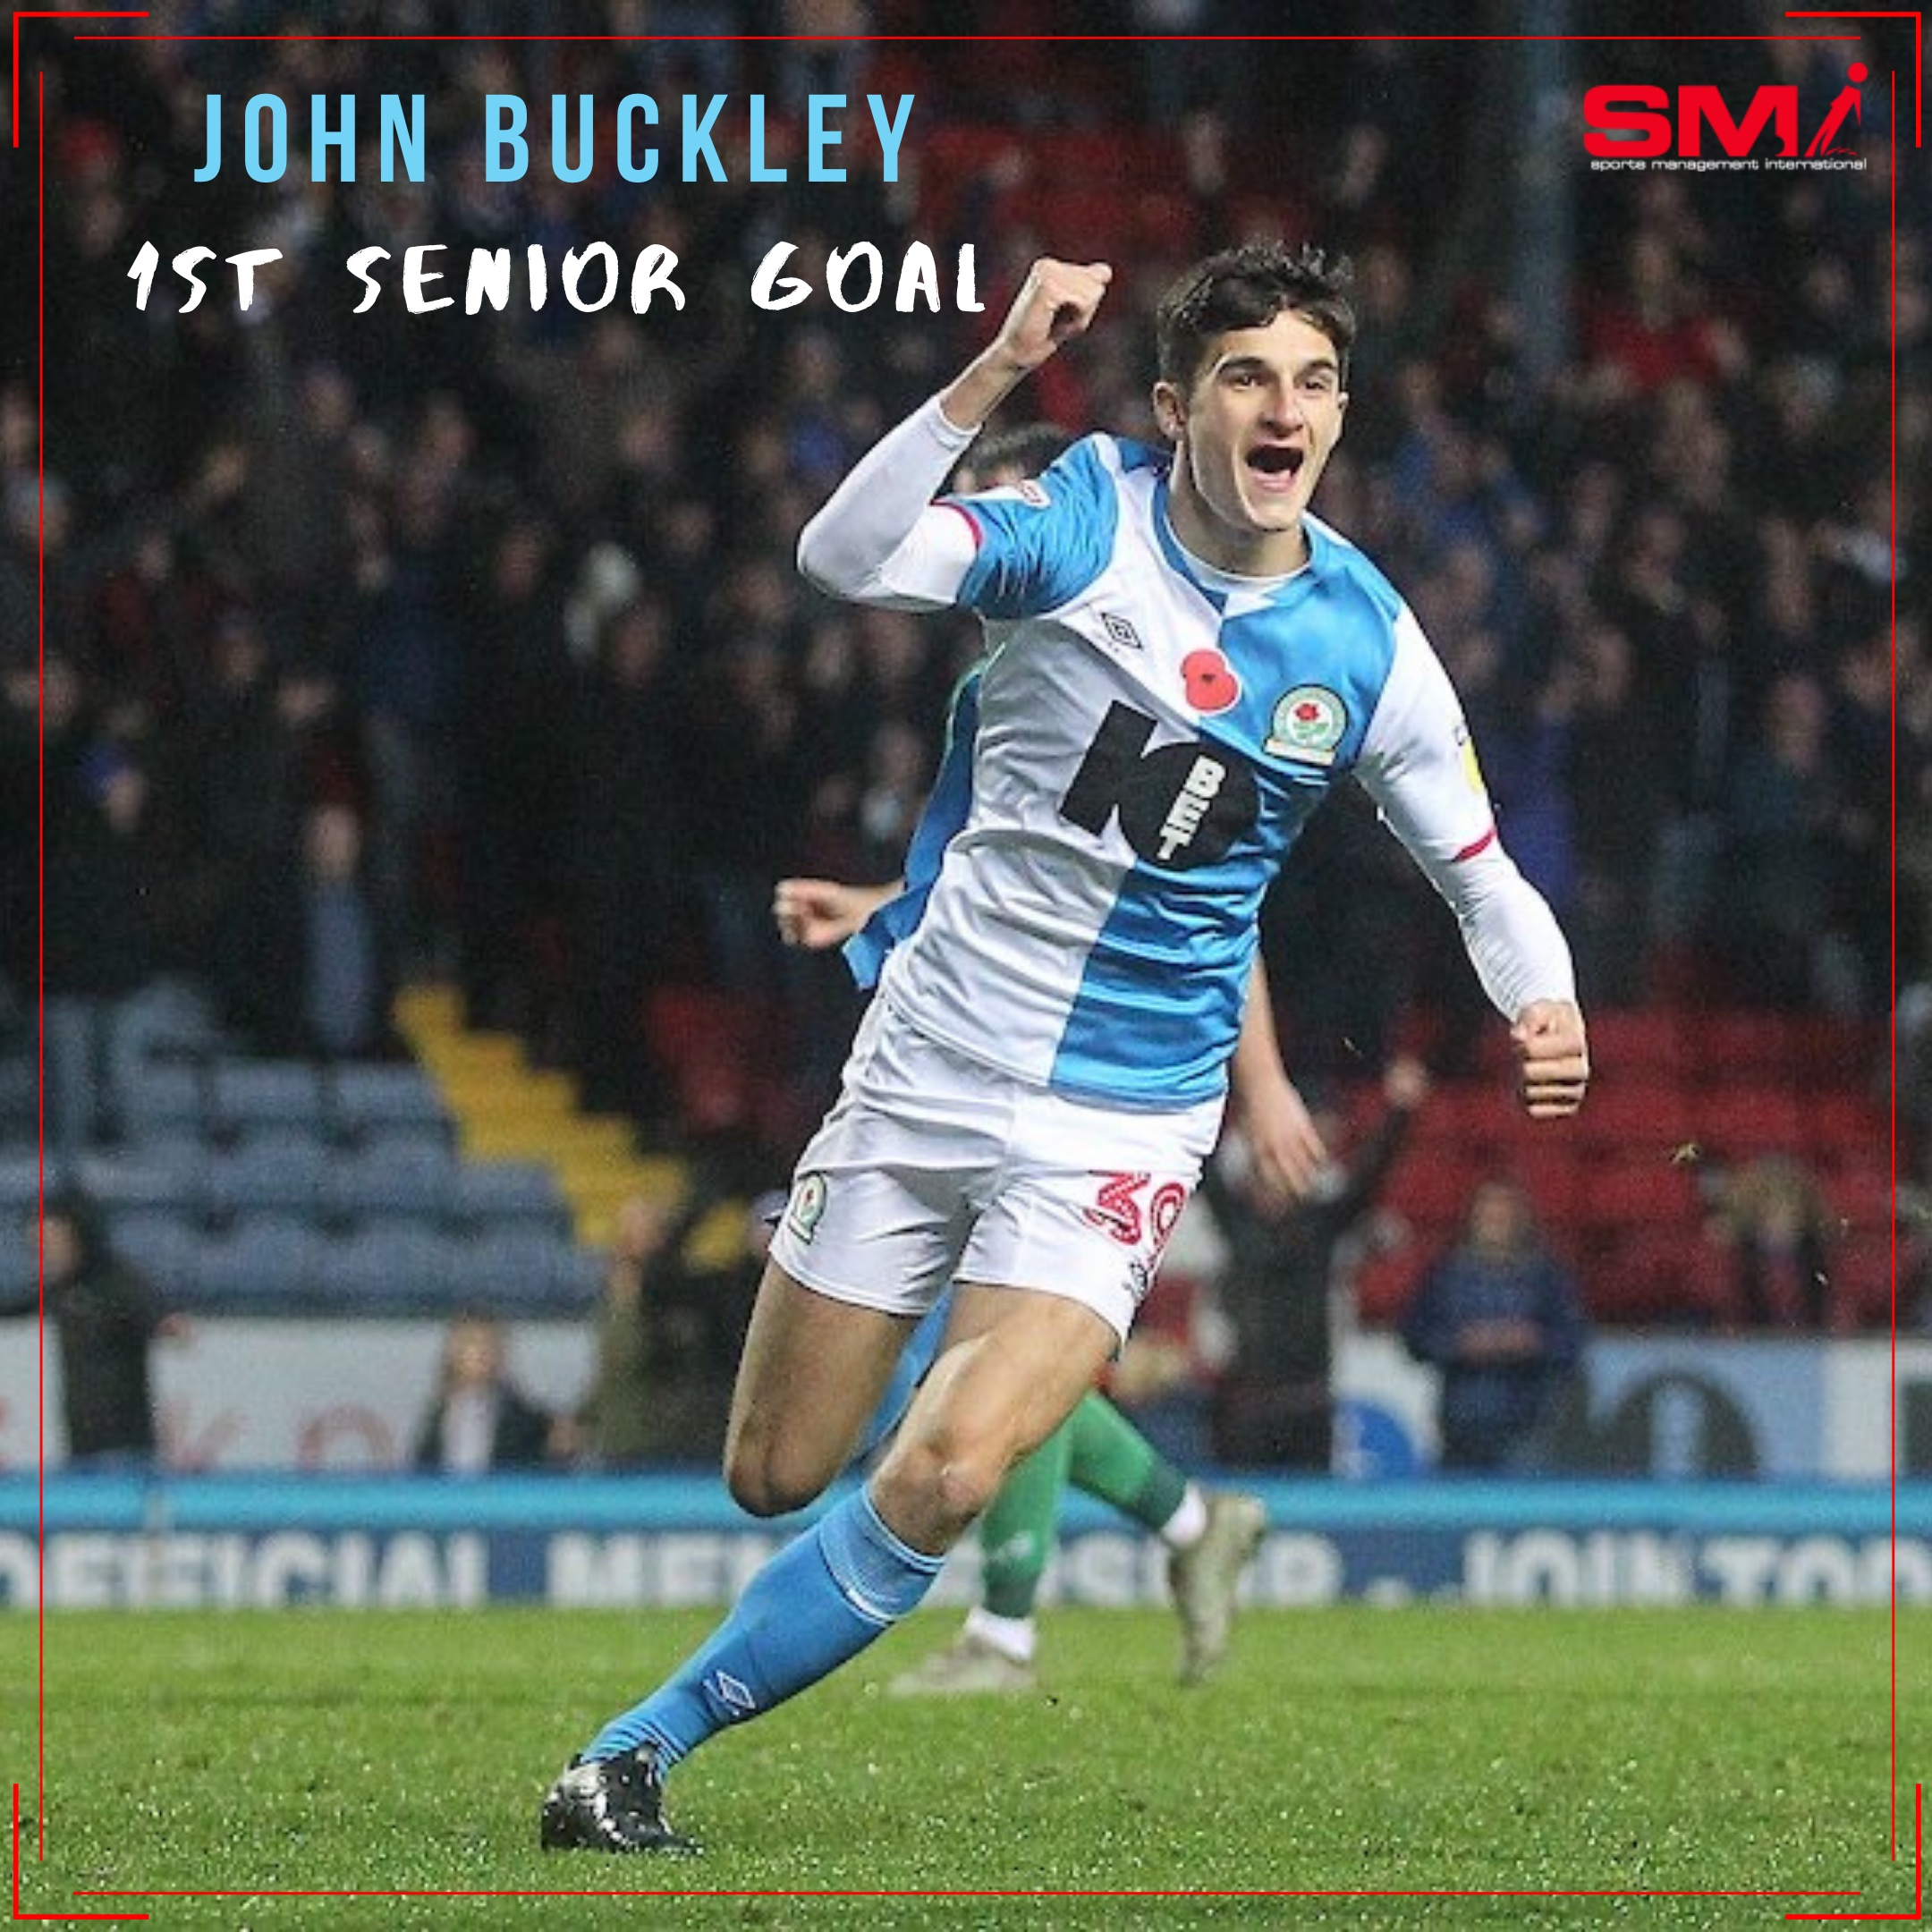 John Buckley scores first senior professional goal